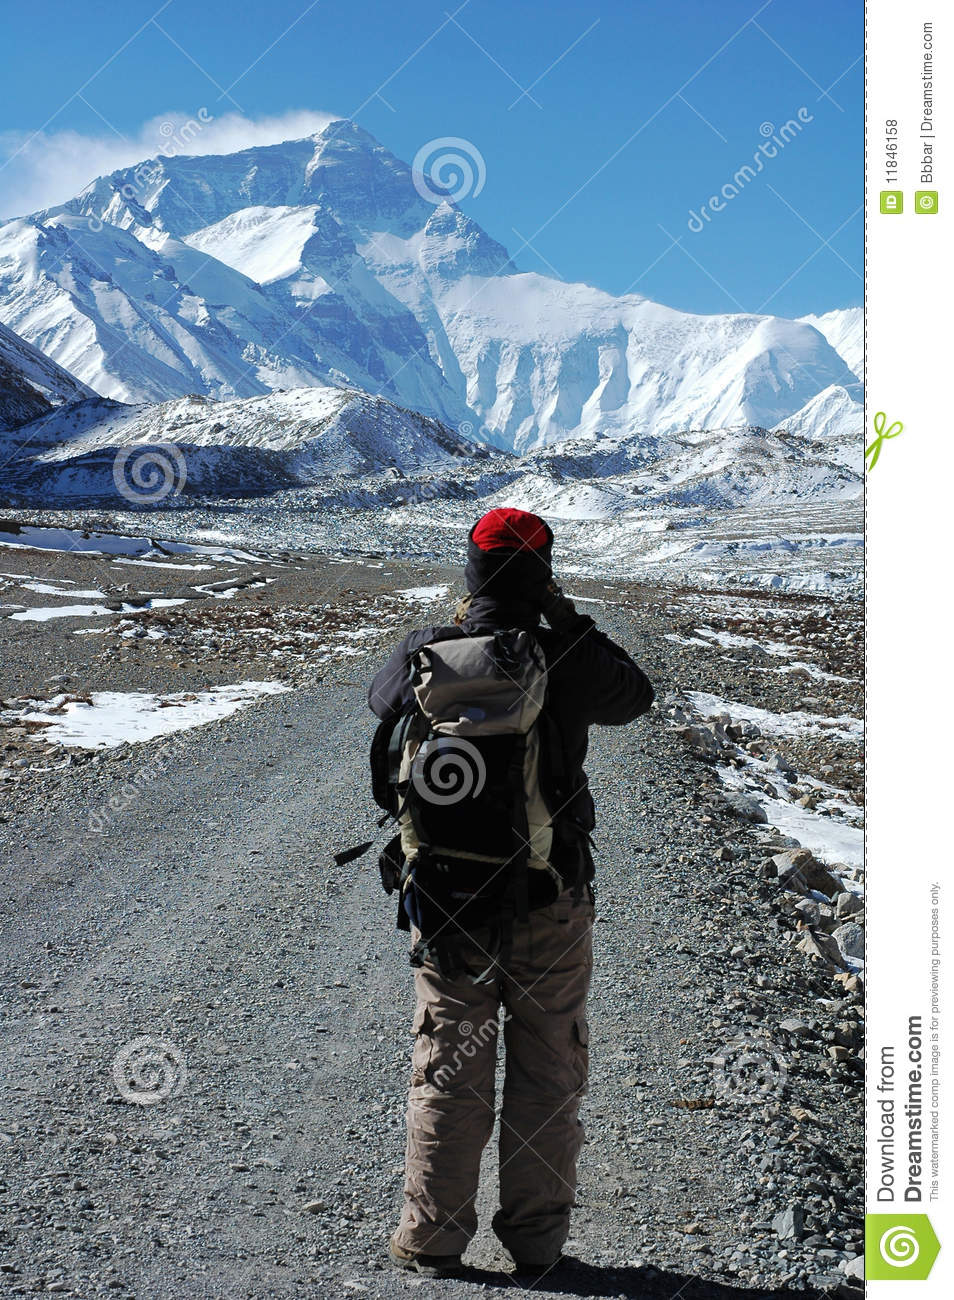 Hiking to the Everest